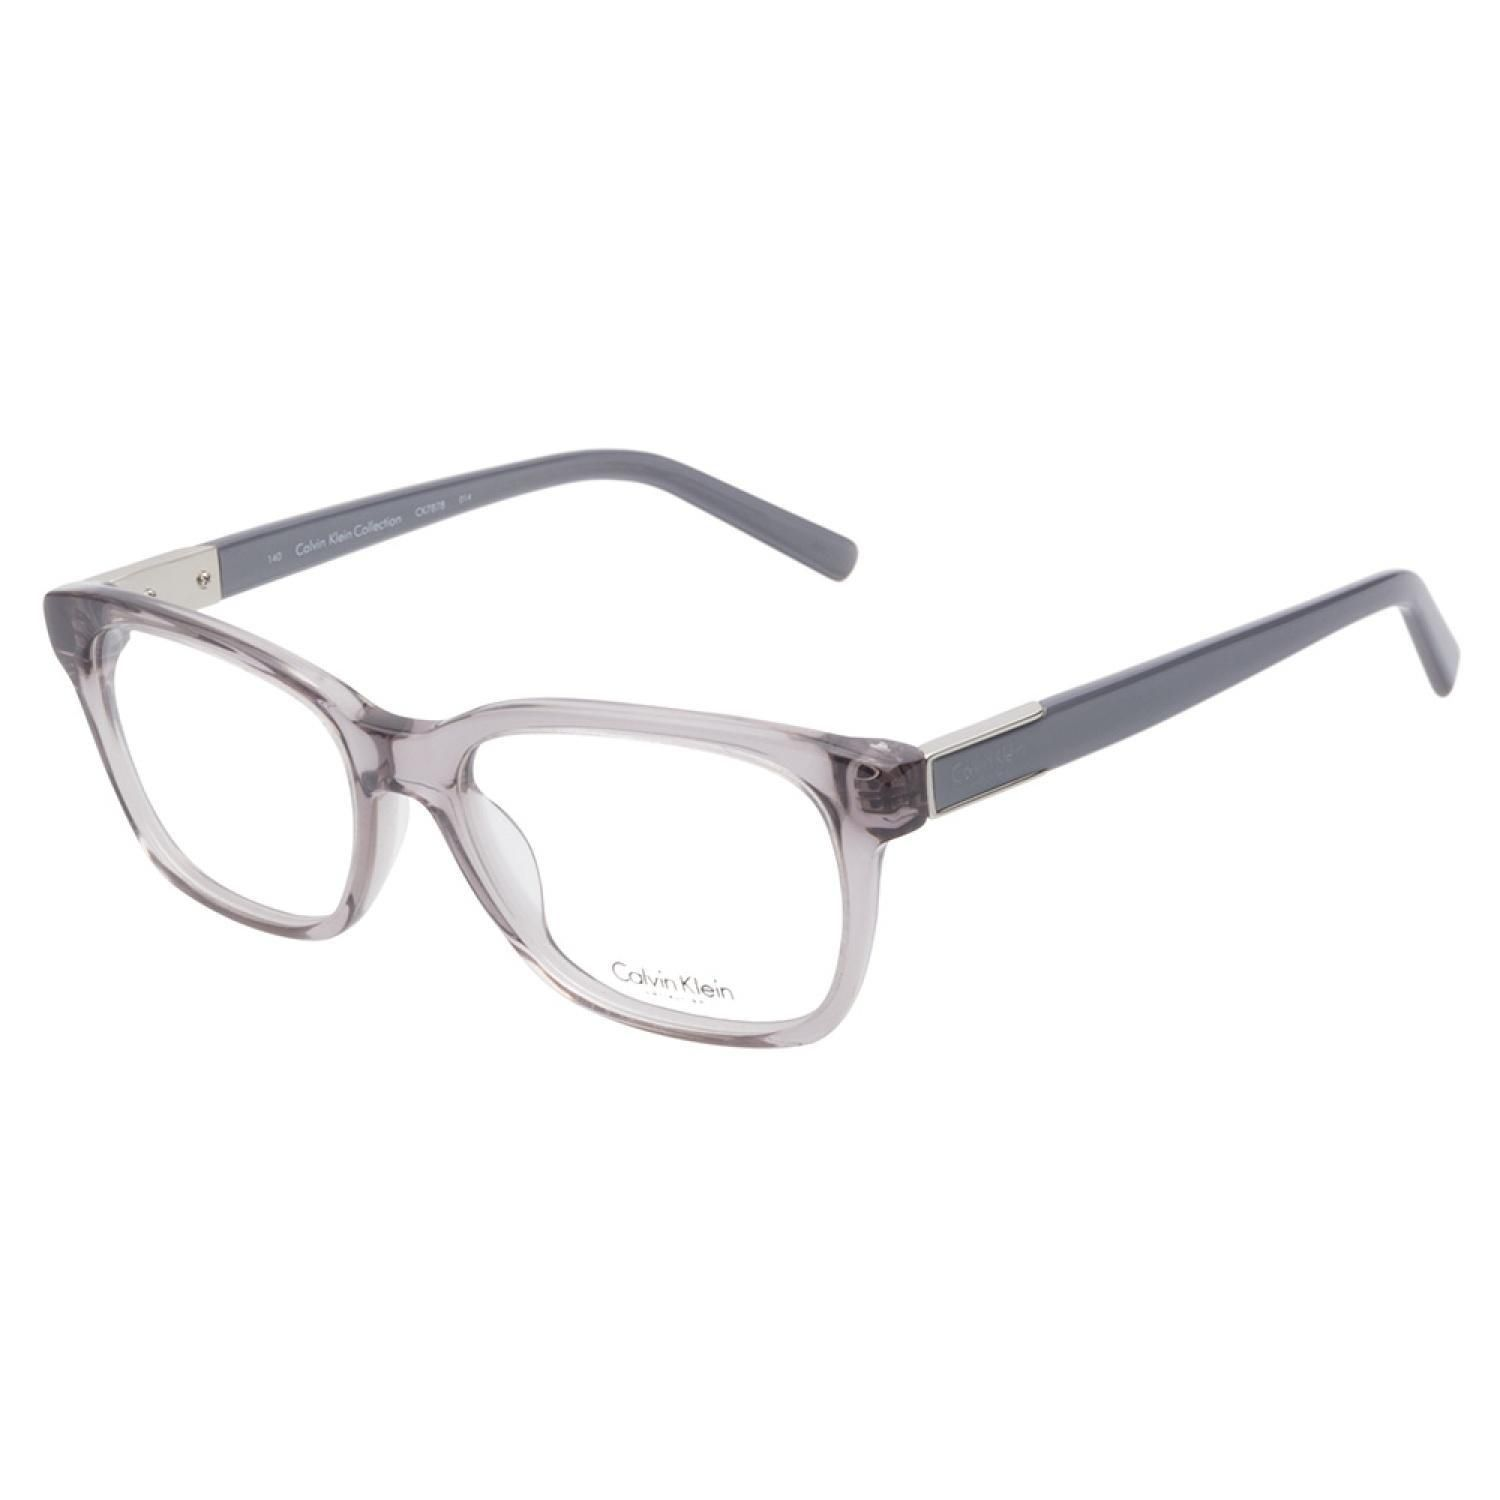 Frame glasses calvin klein - Calvin Klein Ck7878 014 Grey Eyeglasses Are Crisp And Clear This Transparent Frame Comes In